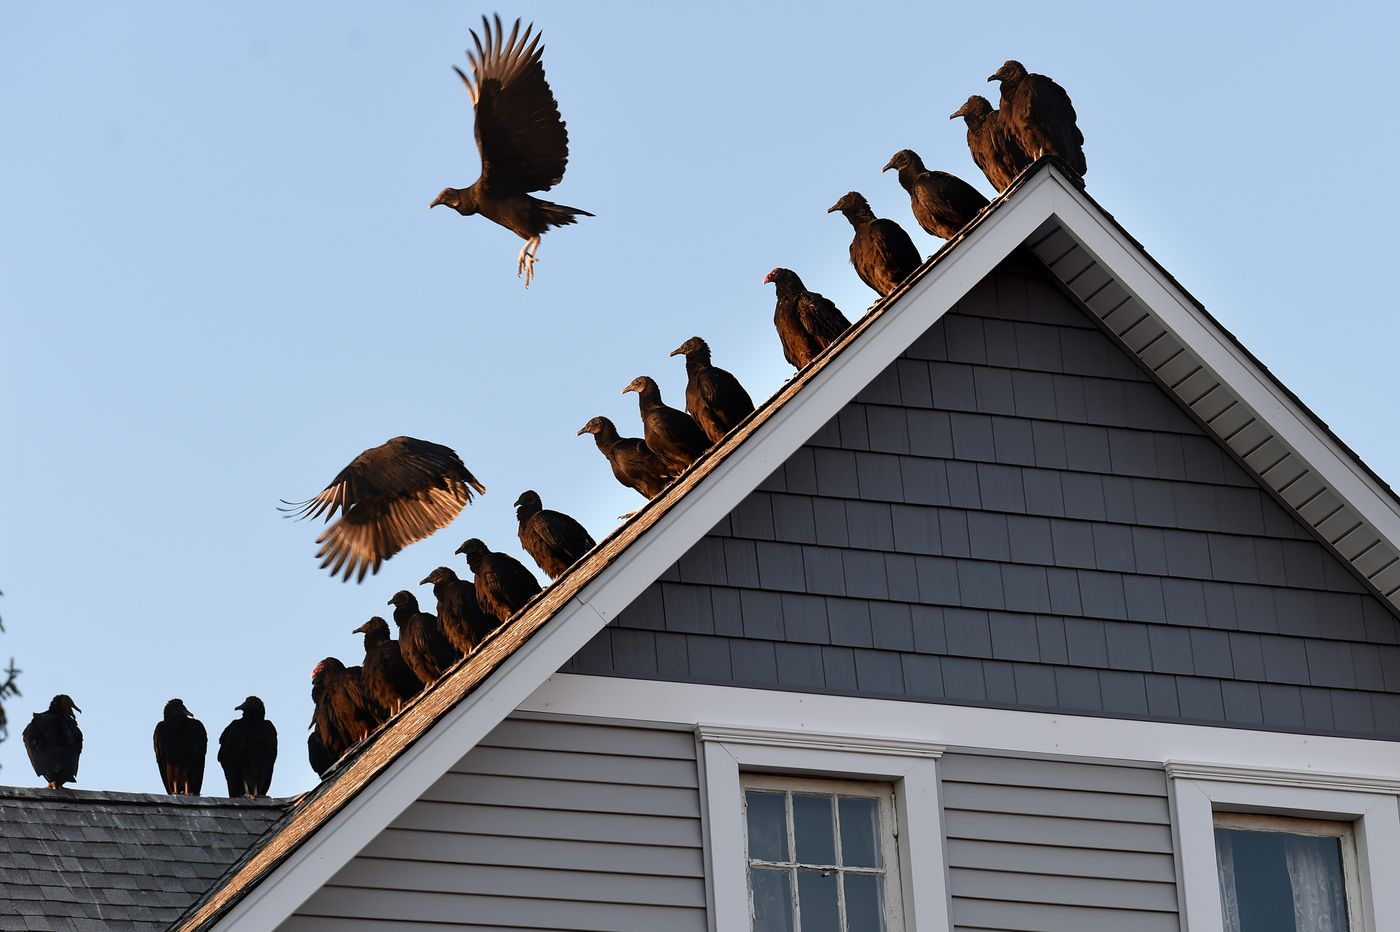 Hundreds of vultures flood a N.J. town. Some want them to buzz off, but others want to celebrate the ugly bird.